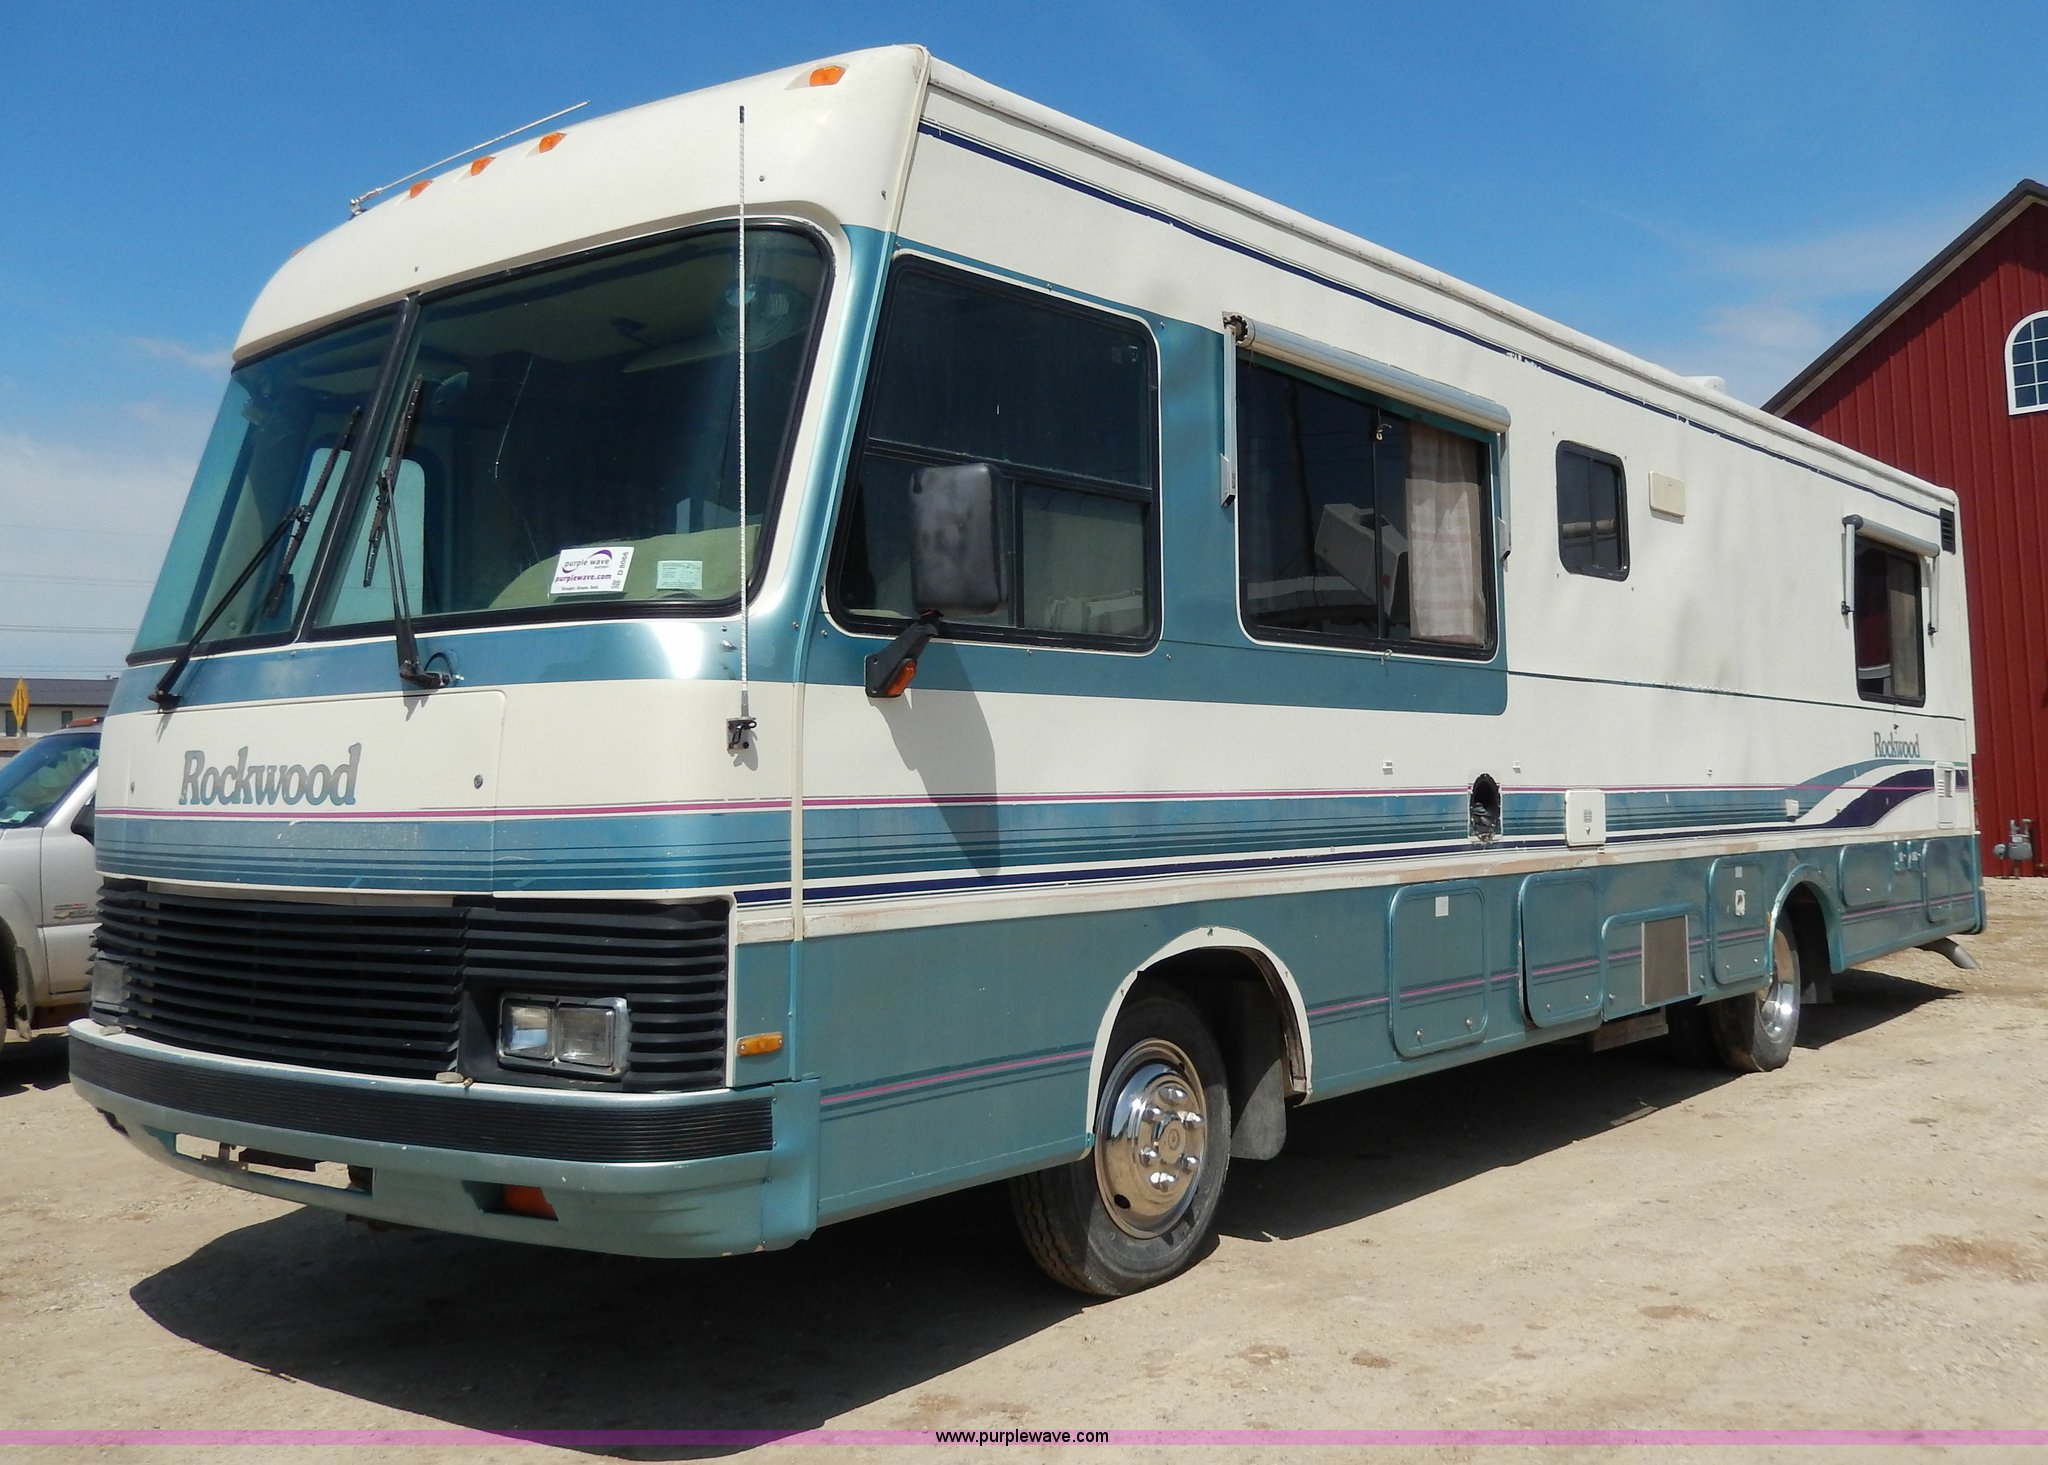 1992 rockwood rv wiring diagram wire center 1993 rockwood embassy series a6322 recreational vehicle it rh purplewave com forest river rv wiring diagrams asfbconference2016 Image collections